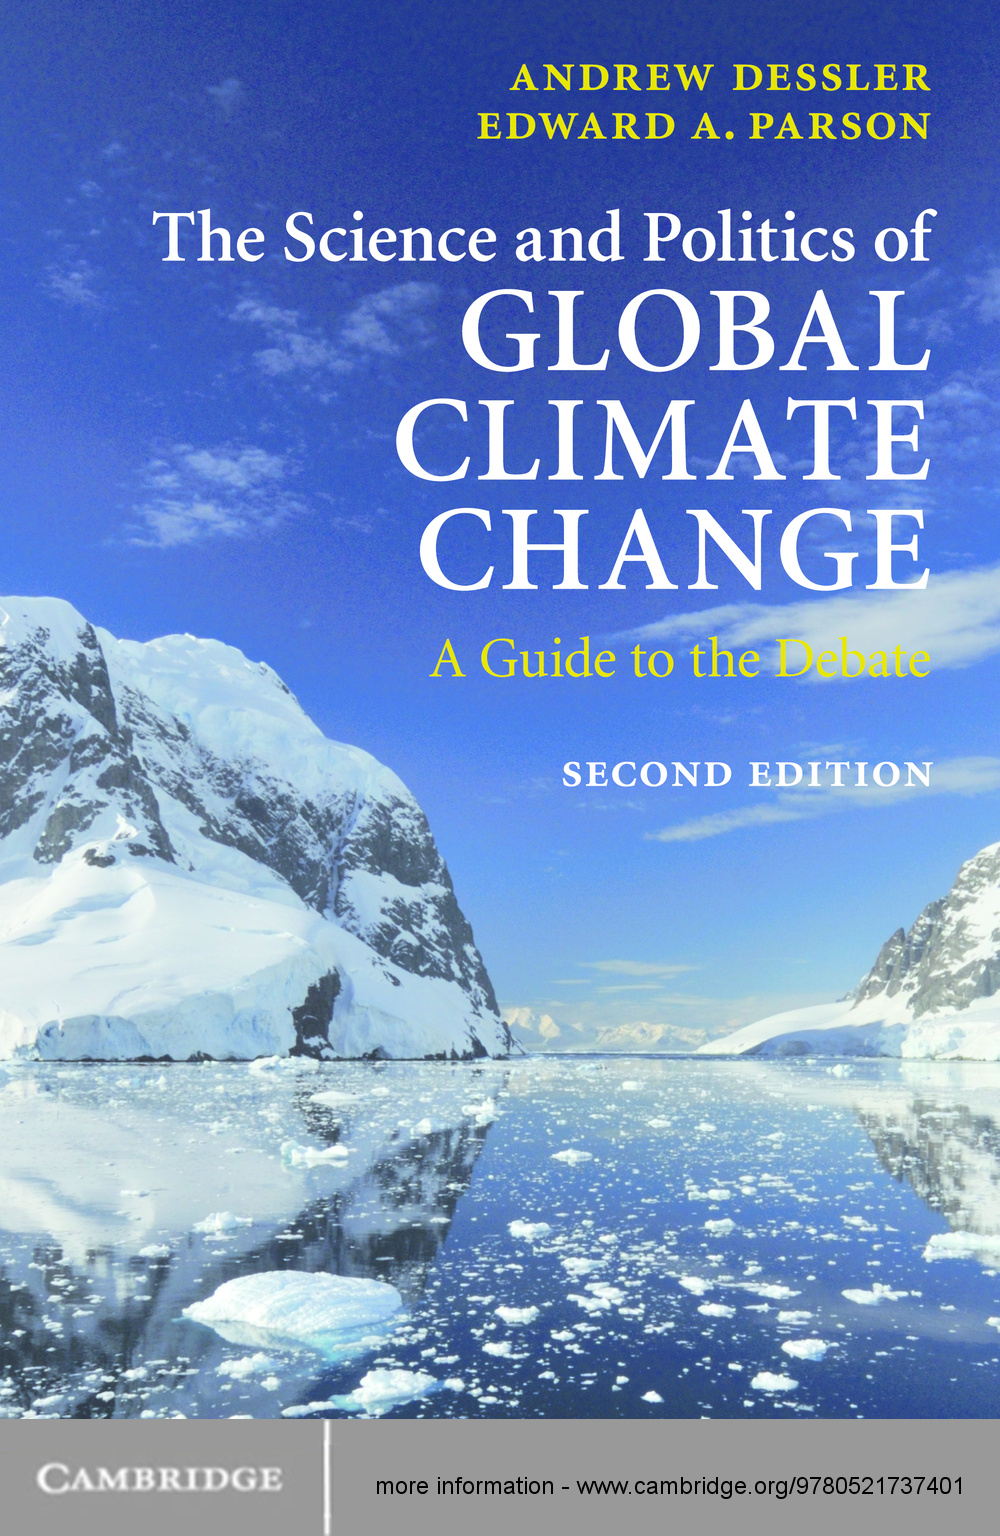 The Science and Politics of Global Climate Change A Guide to the Debate